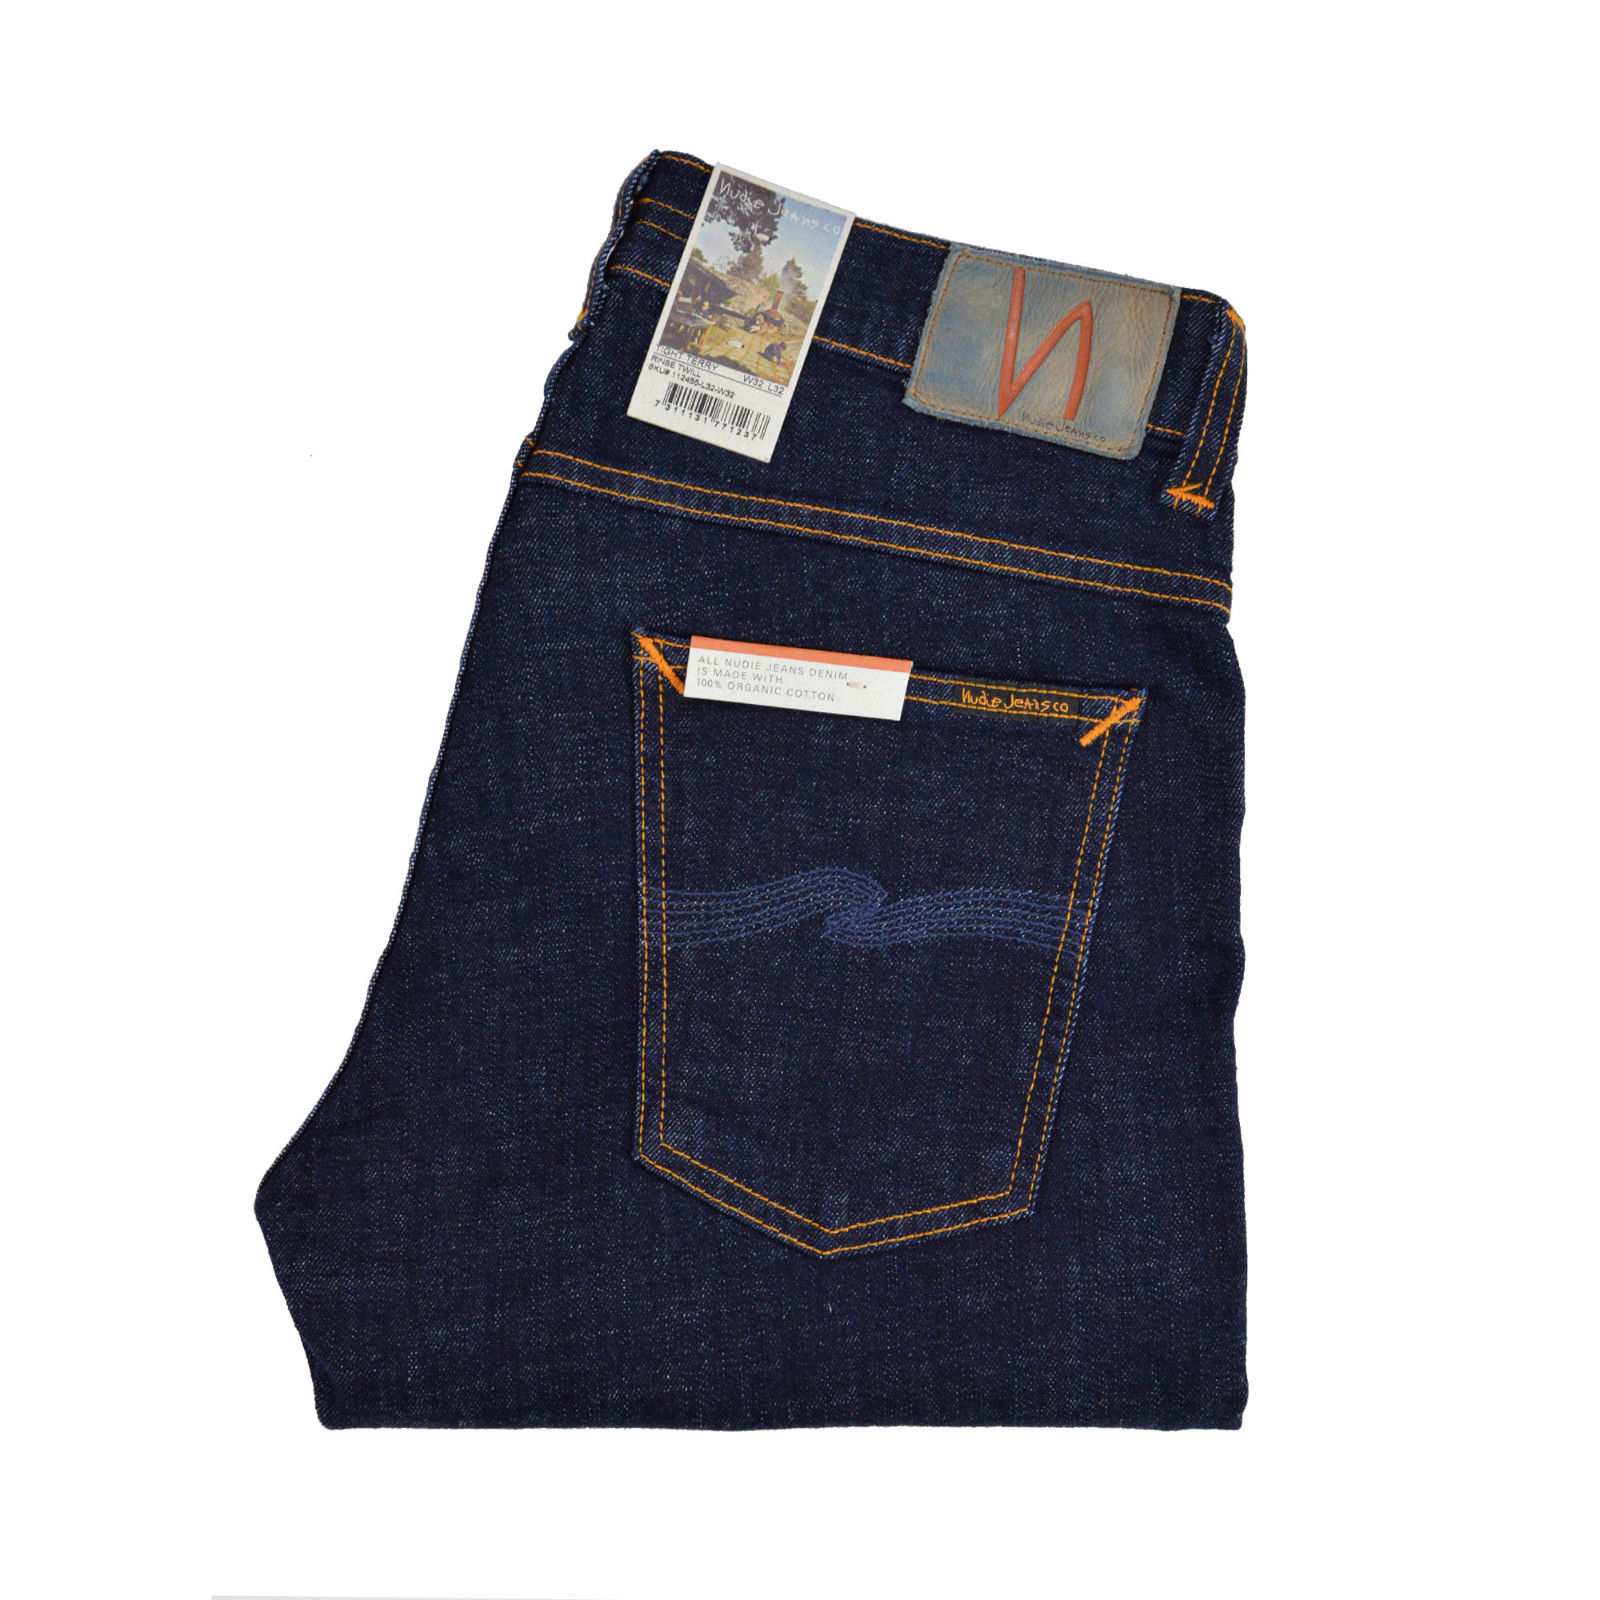 Nudie Jeans - TIGHT TERRY - Rinsed Twill